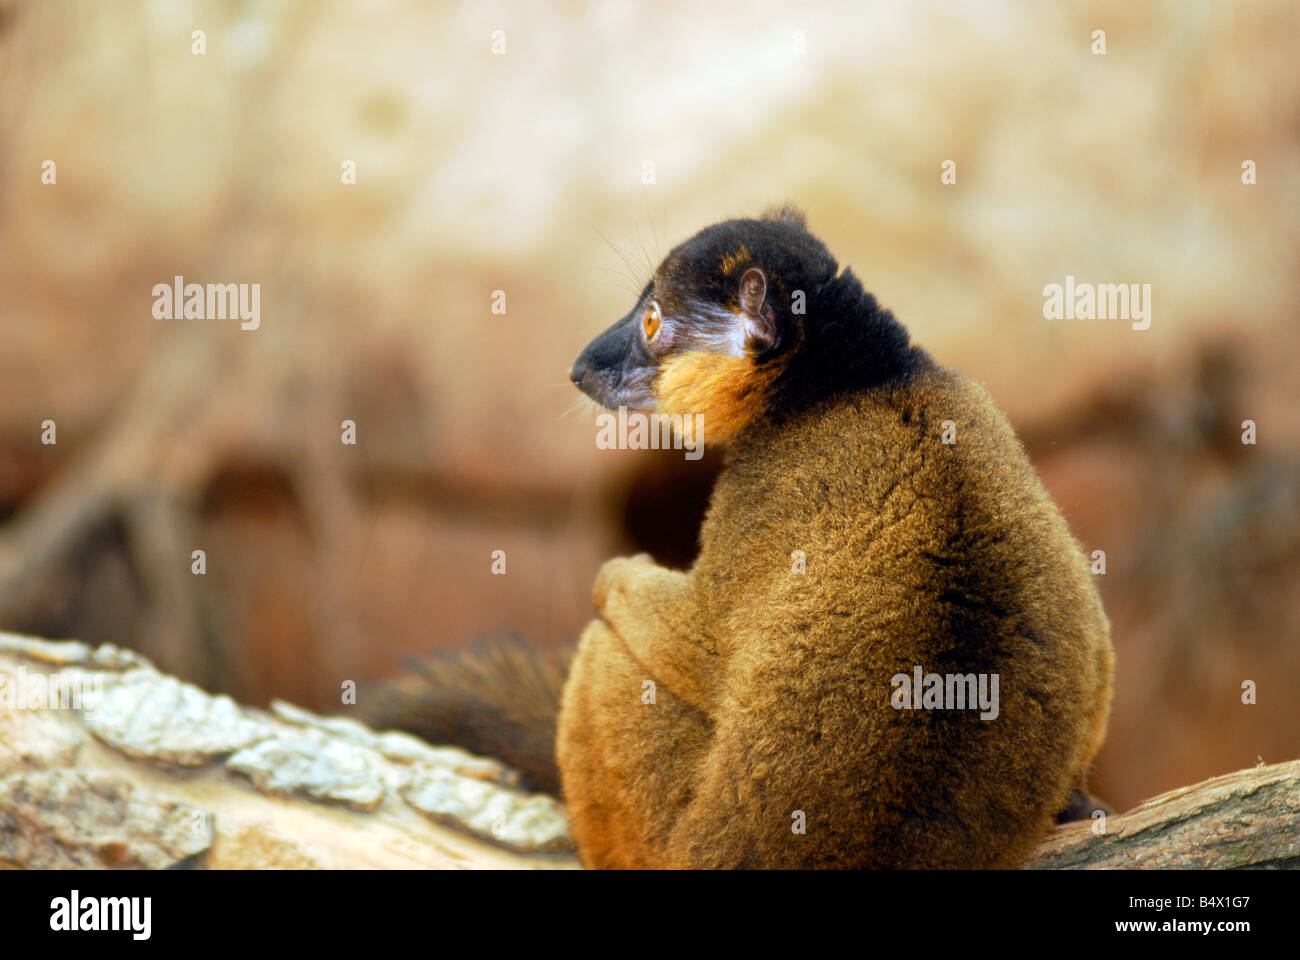 Collared Lemur sitting on a branch profile - Stock Image